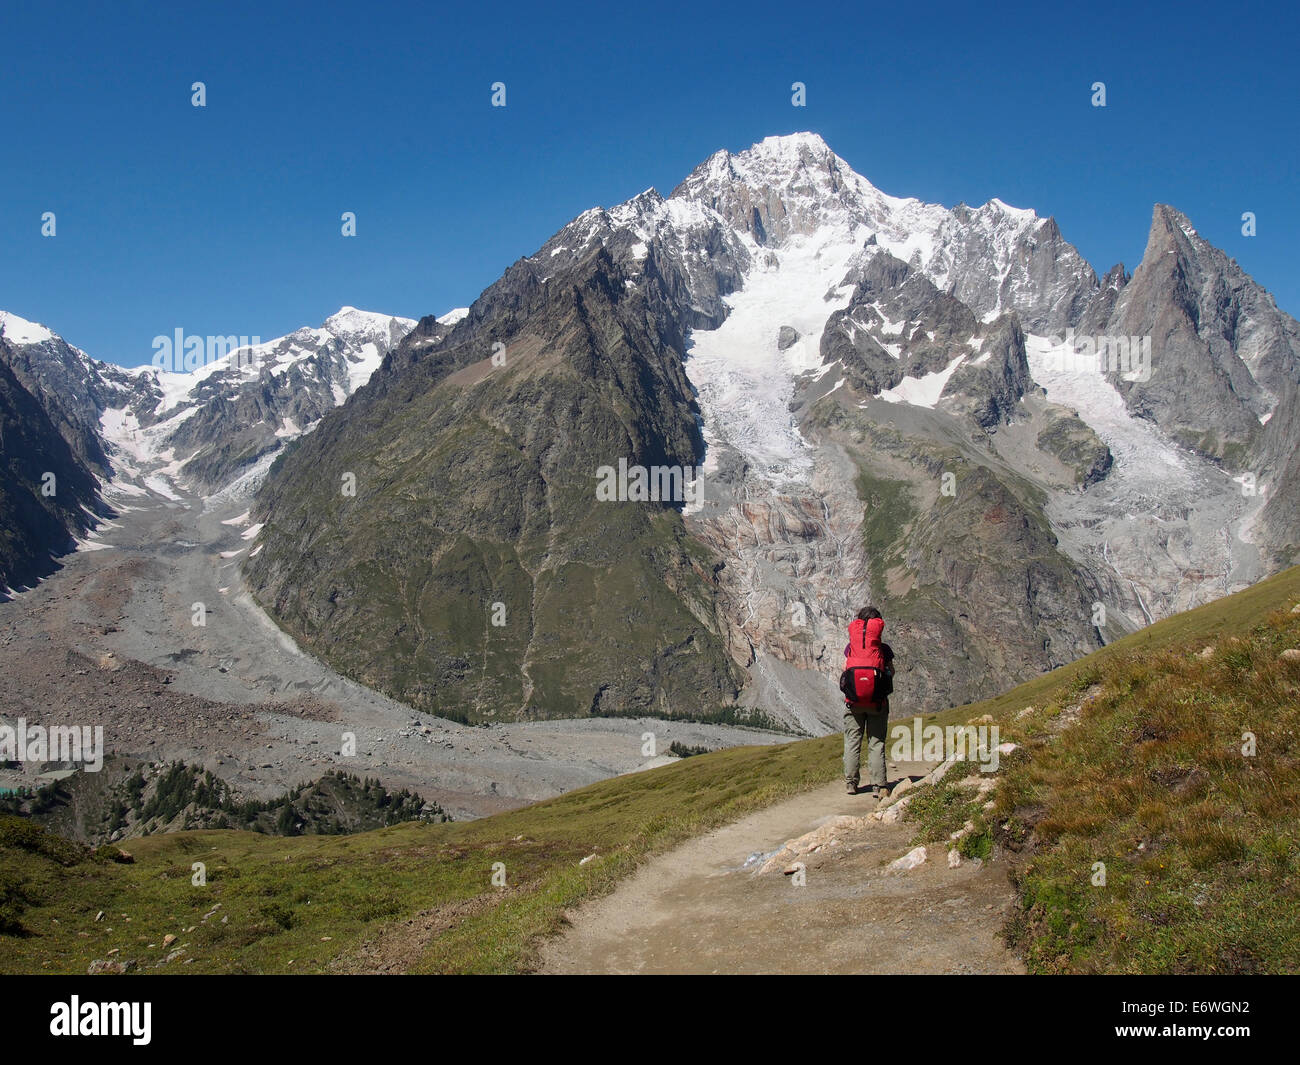 Tour of Mont Blanc, Val Veny, Italian Alps with Mont Blanc behind - Stock Image